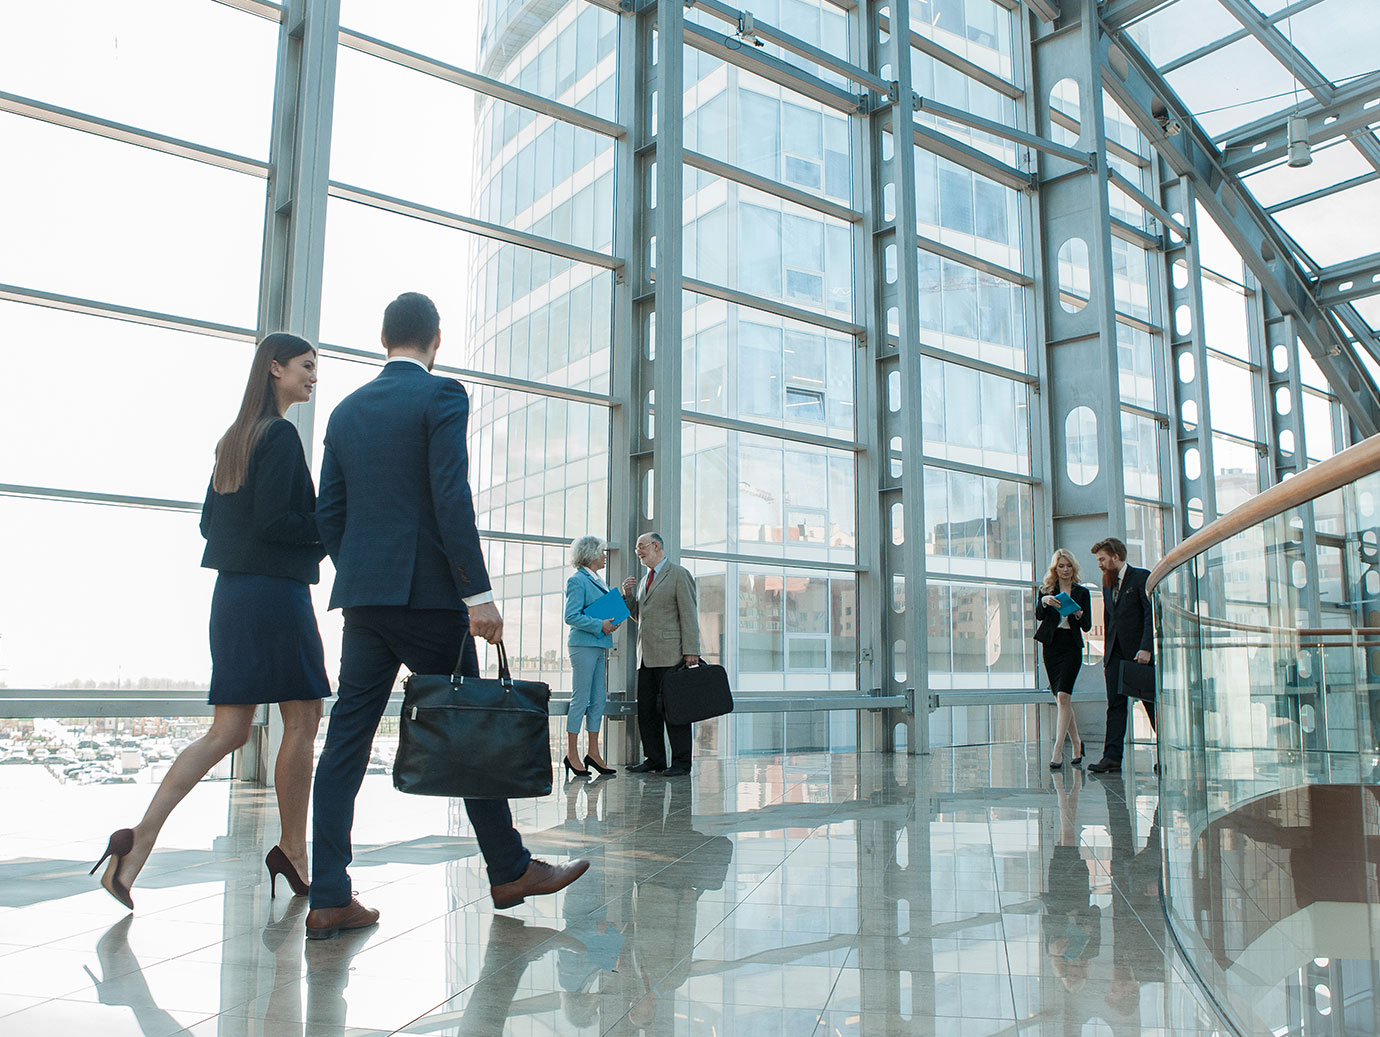 Businesspeople walking in modern office space